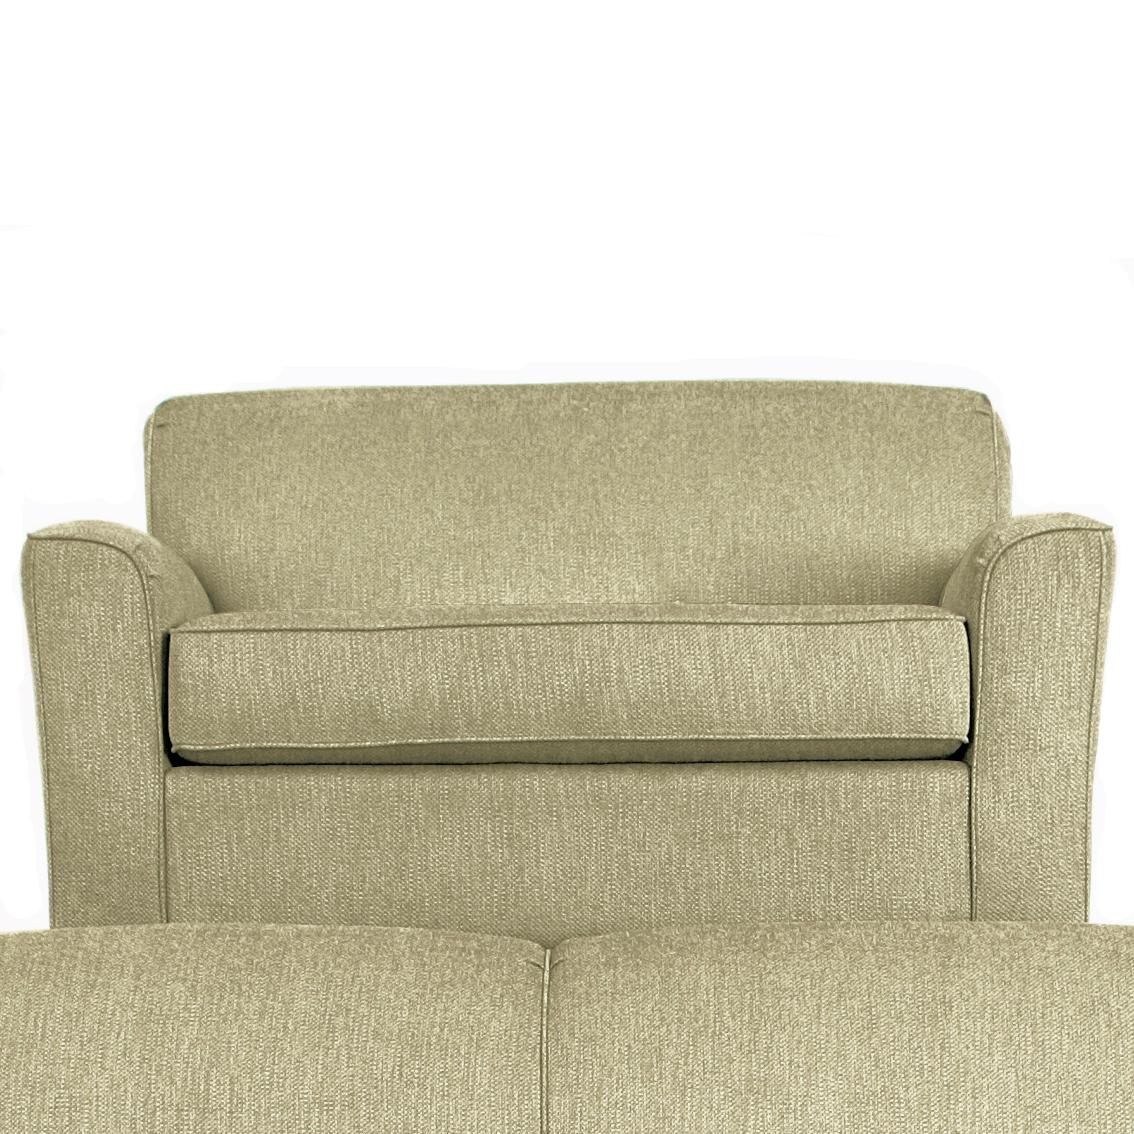 Image of: Twin Sleeper Chair And a Half  Dinah